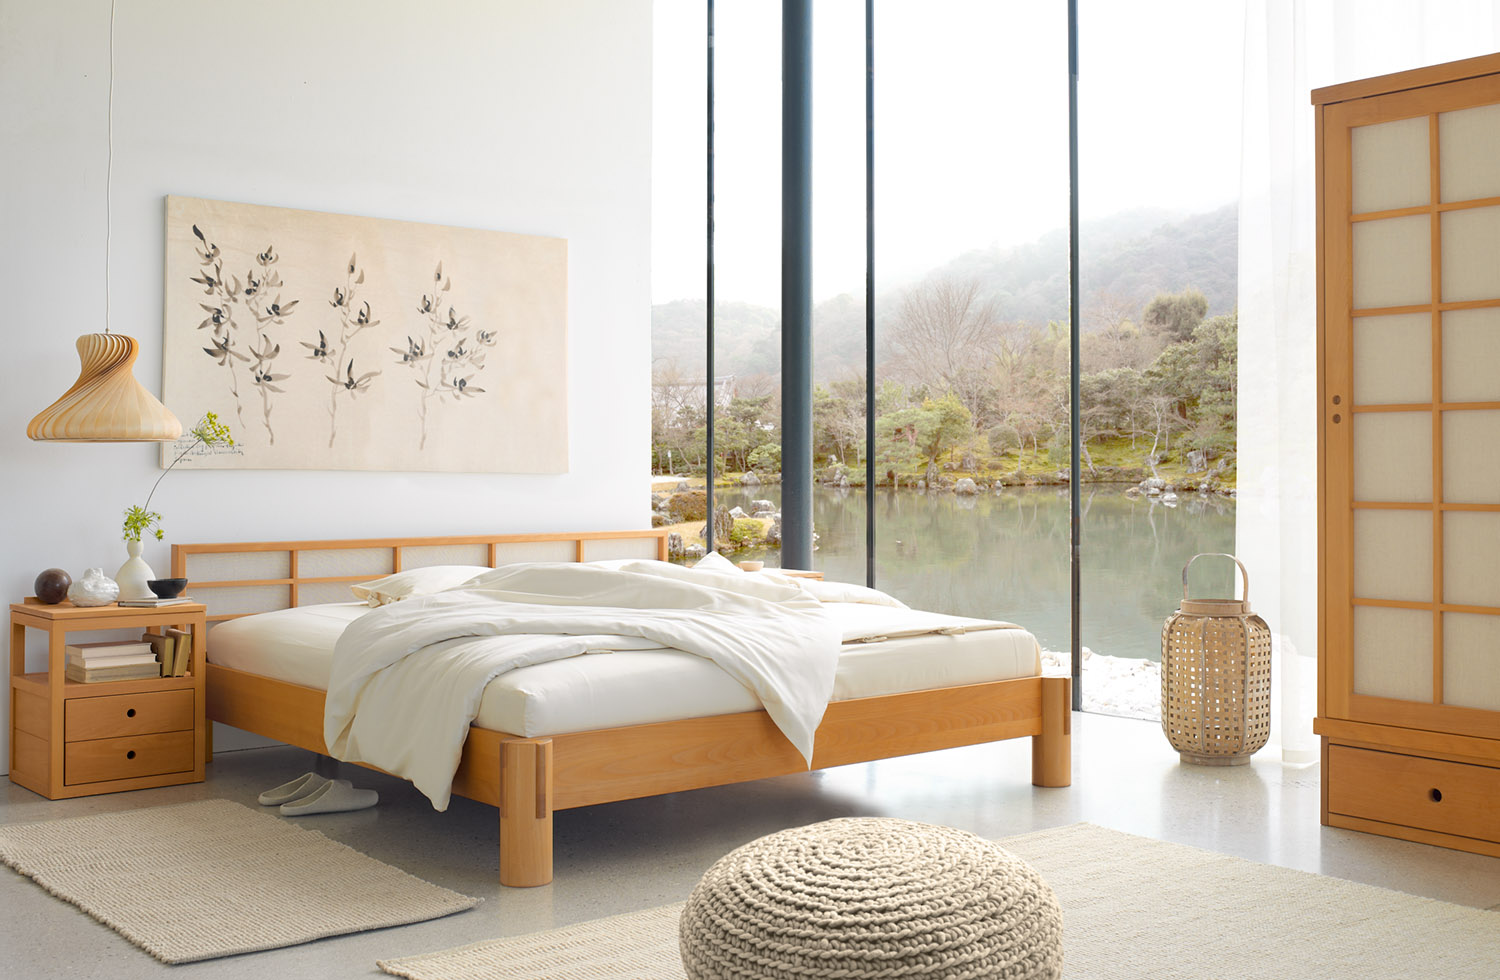 bett ryokan gr ne erde. Black Bedroom Furniture Sets. Home Design Ideas